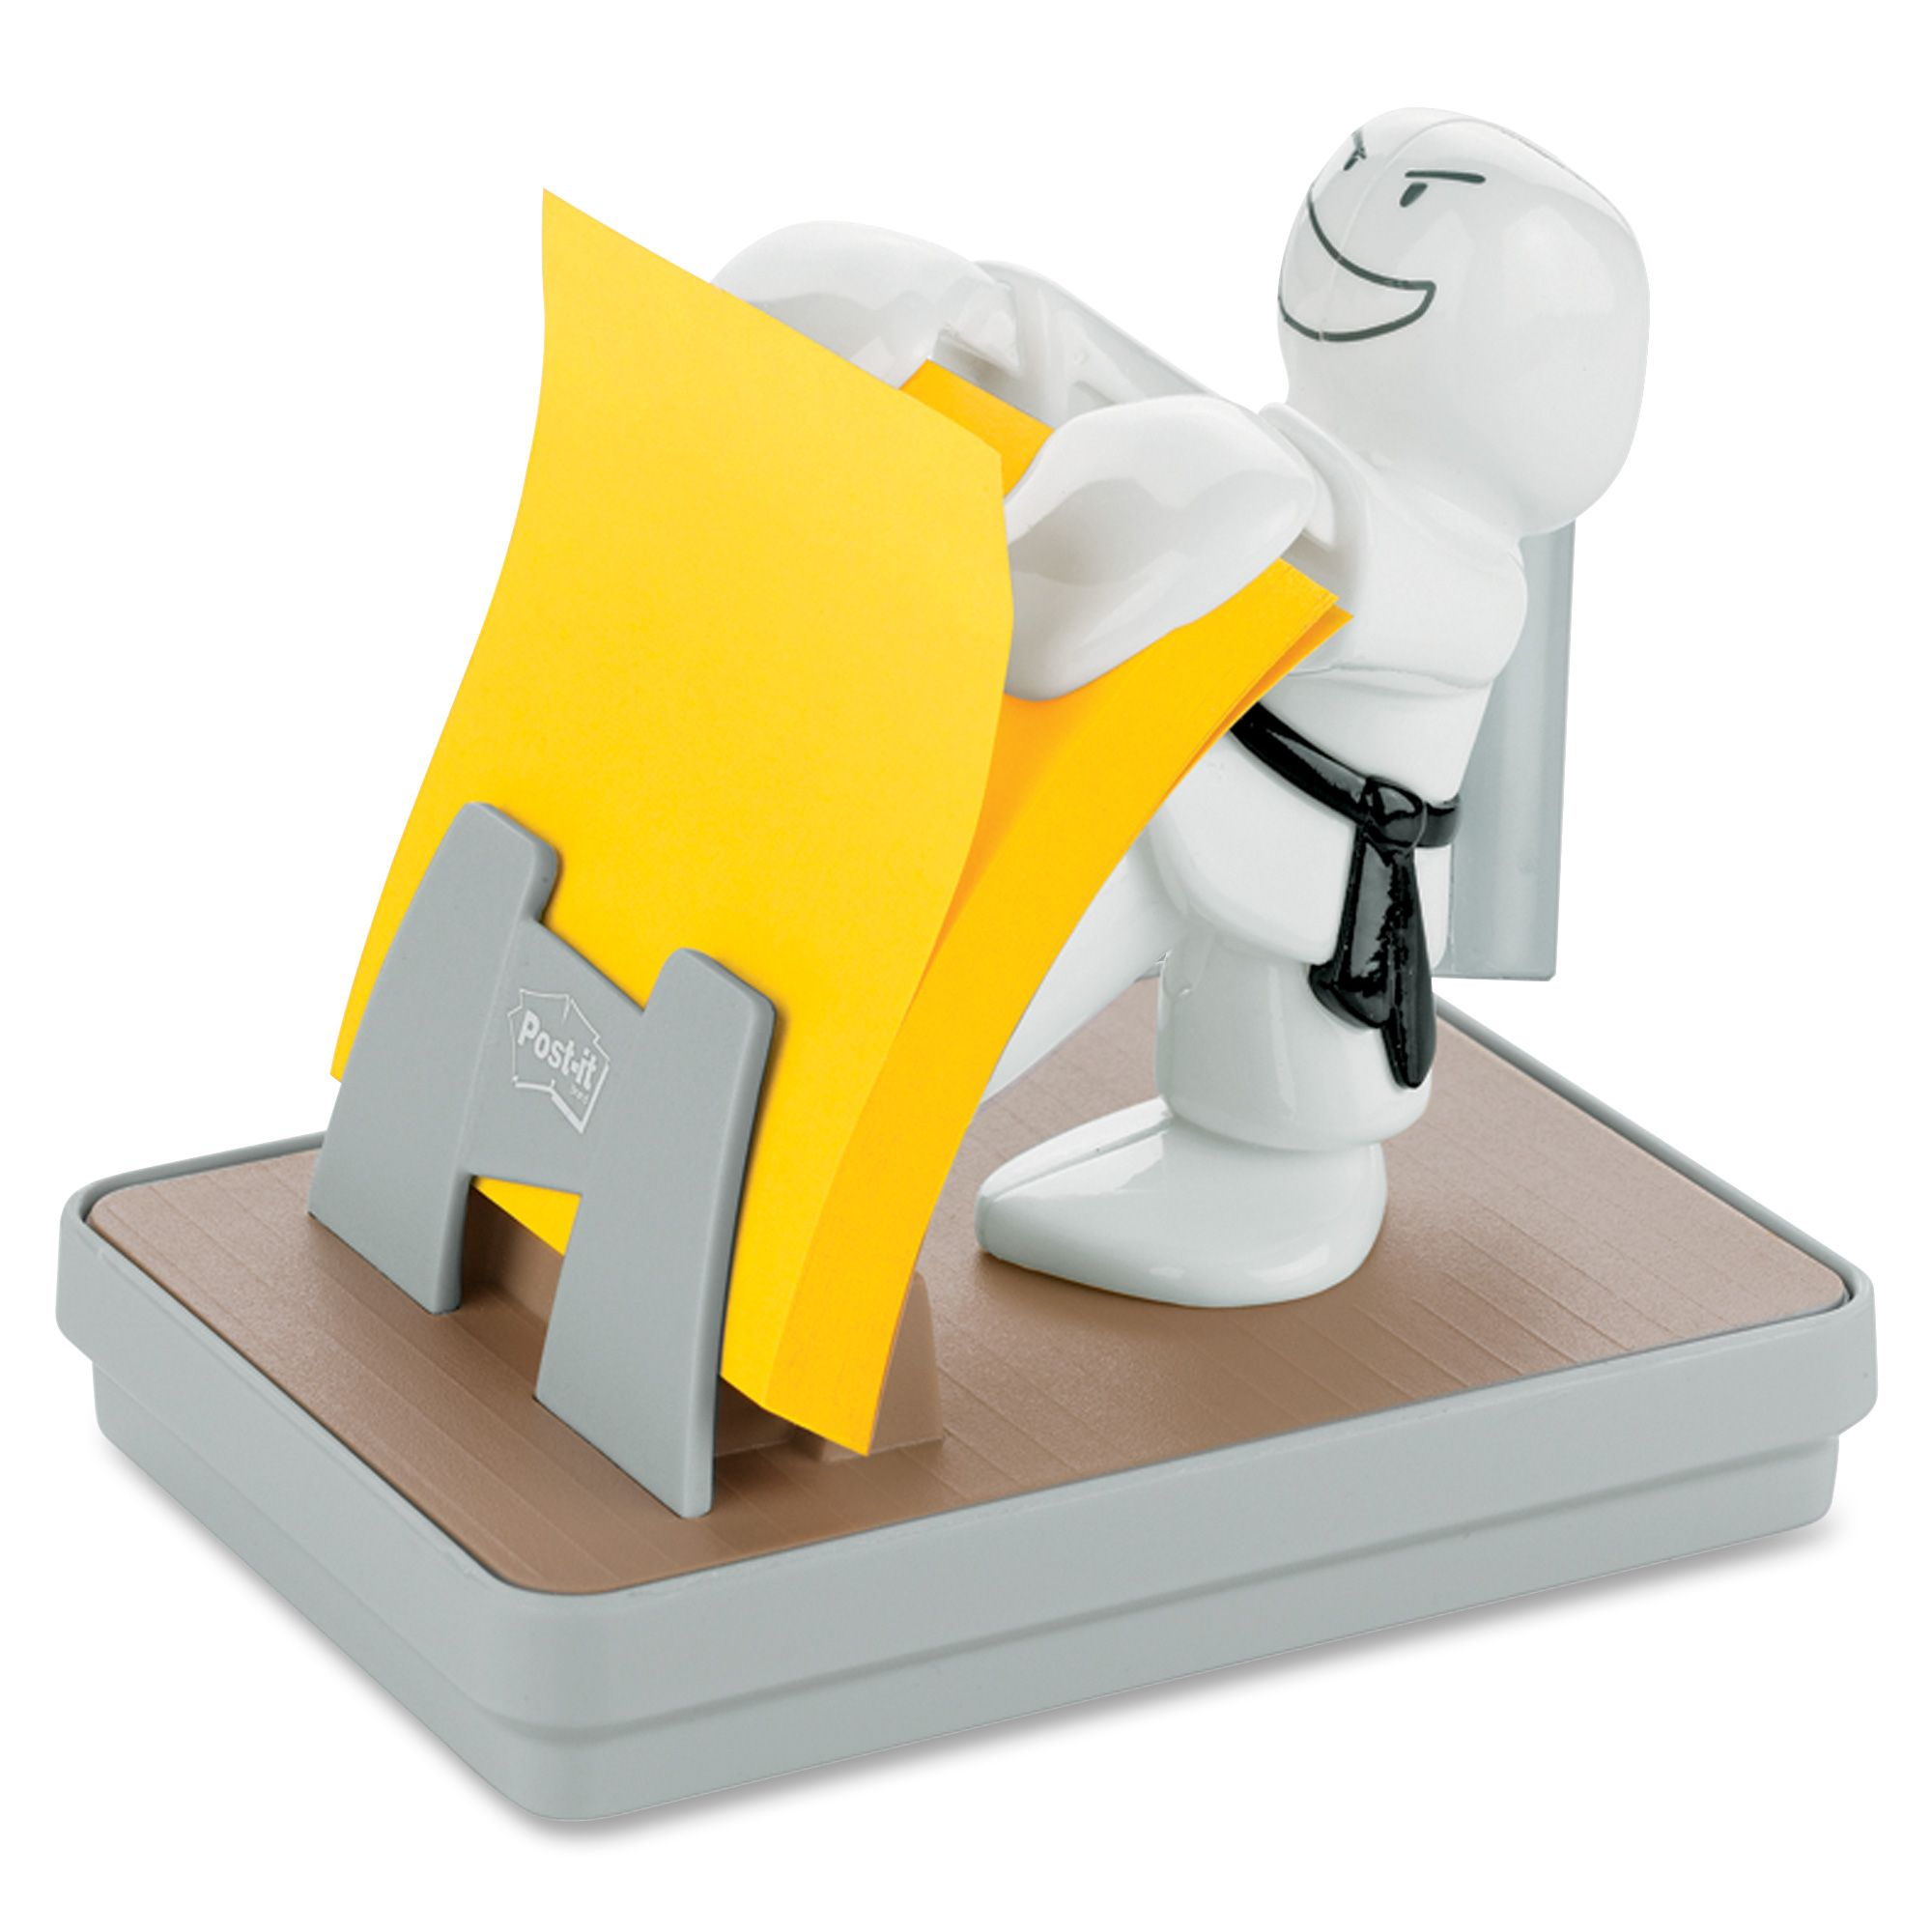 Merveilleux Cute And Fun Office Gift. Karate Pop Up Post It Note Dispenser With Pen  Holder.